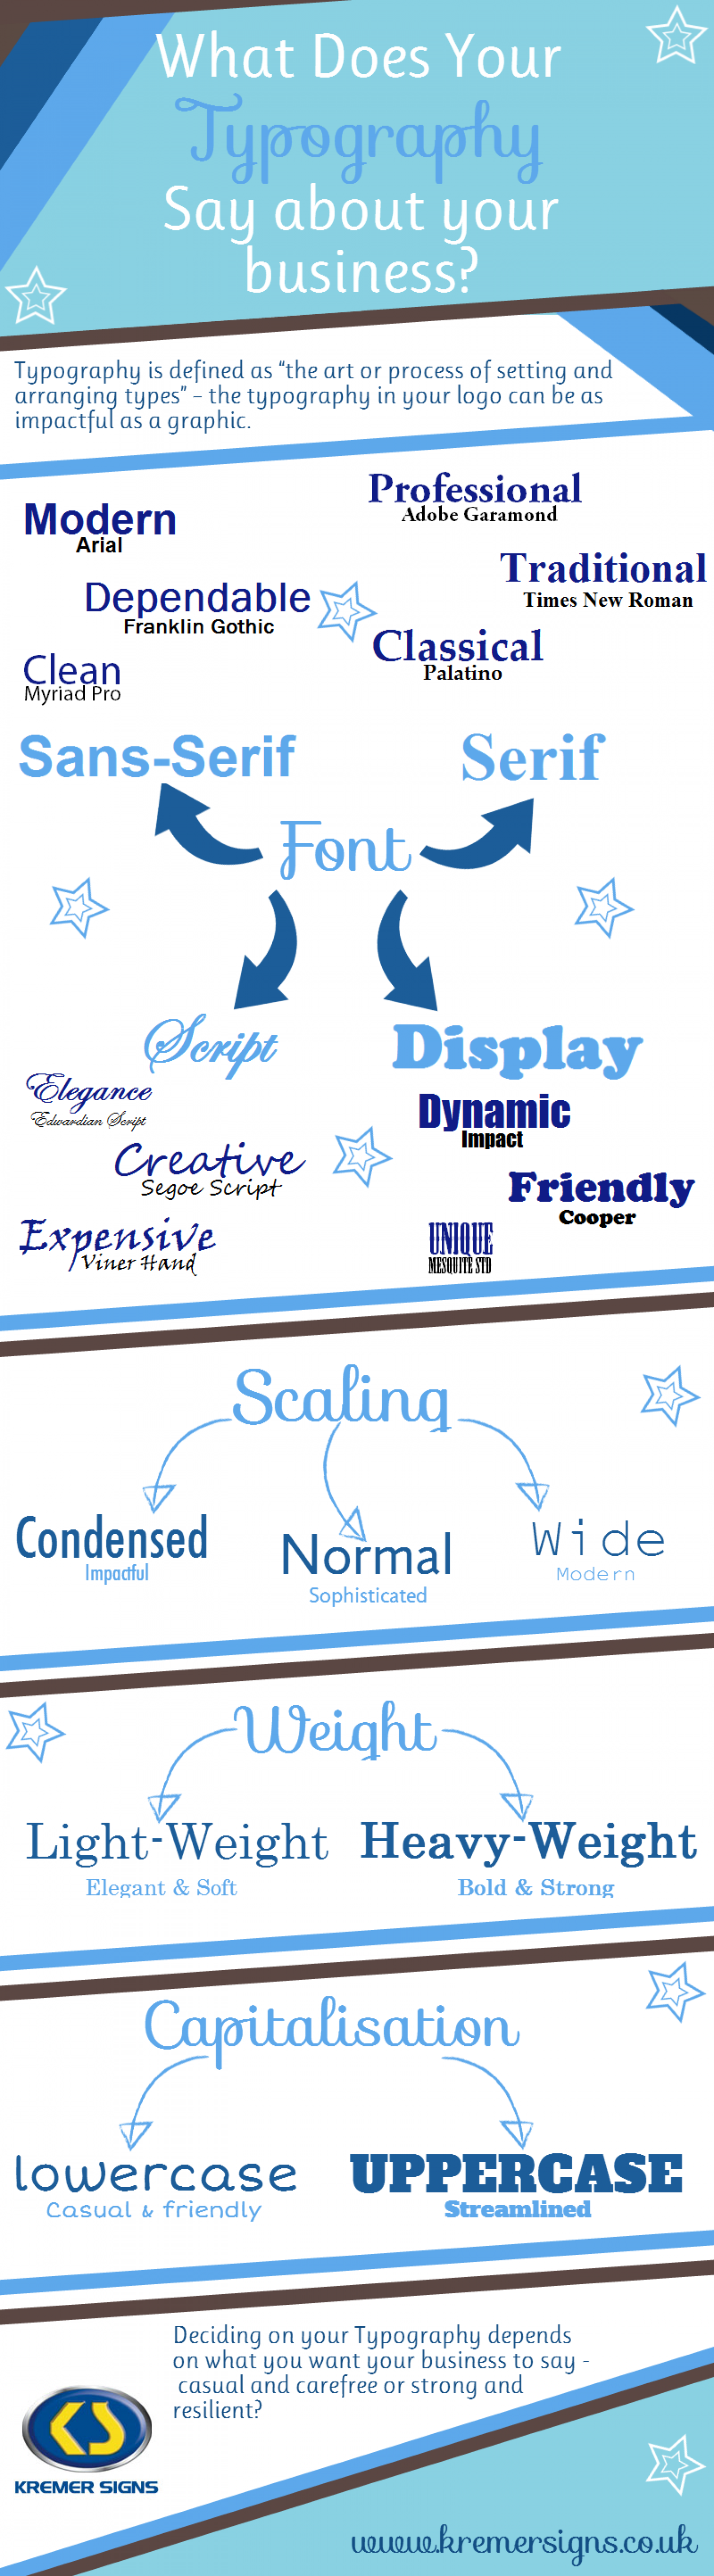 What your Typography says about your business Infographic